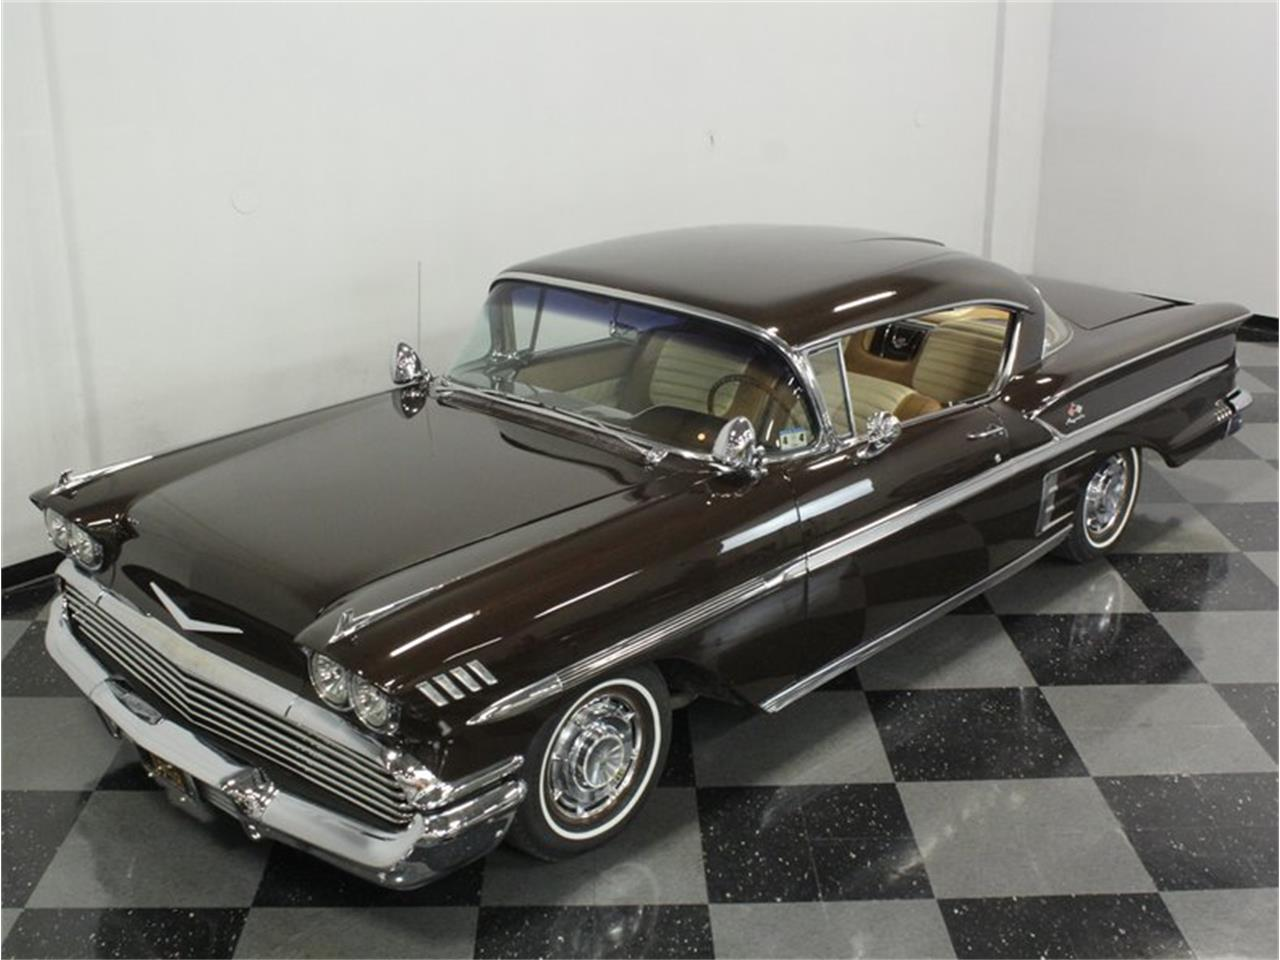 Large Picture of Classic '58 Chevrolet Impala located in Texas - $44,995.00 Offered by Streetside Classics - Dallas / Fort Worth - HX8B